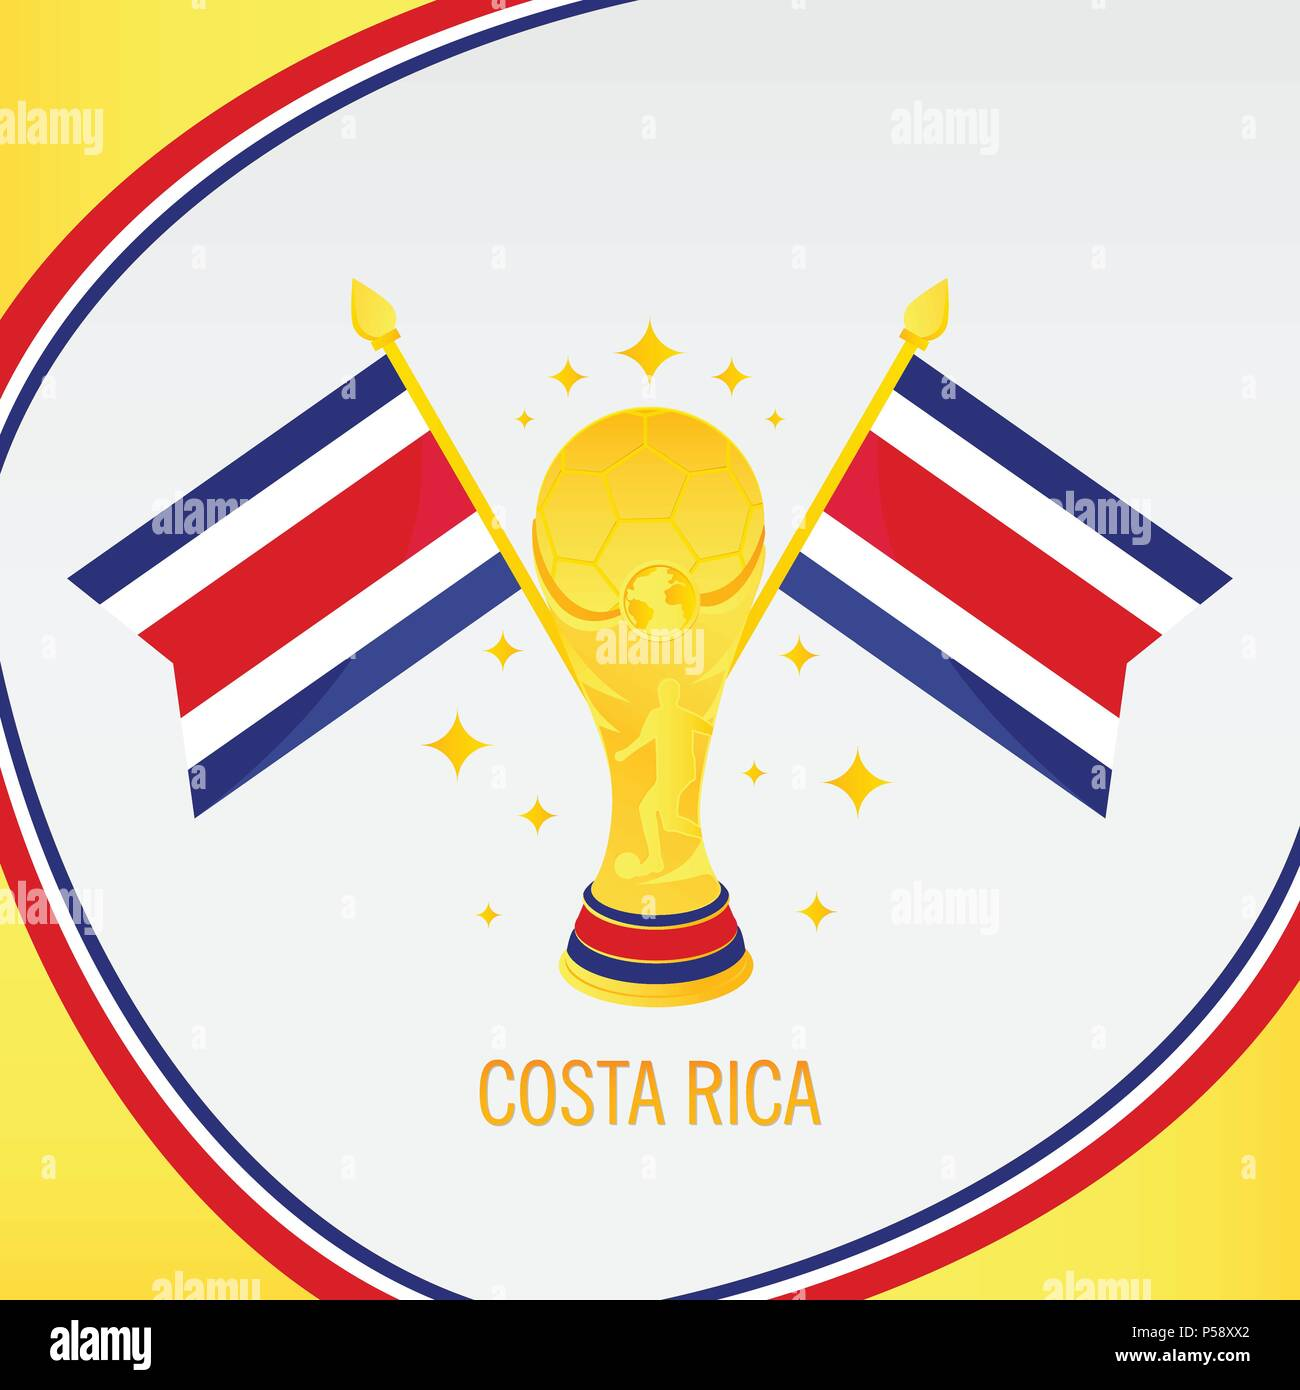 ddff4ff8ef0 Costa Rica Football Champion 2018 - Flag and Golden Trophy / Cup - Stock  Vector